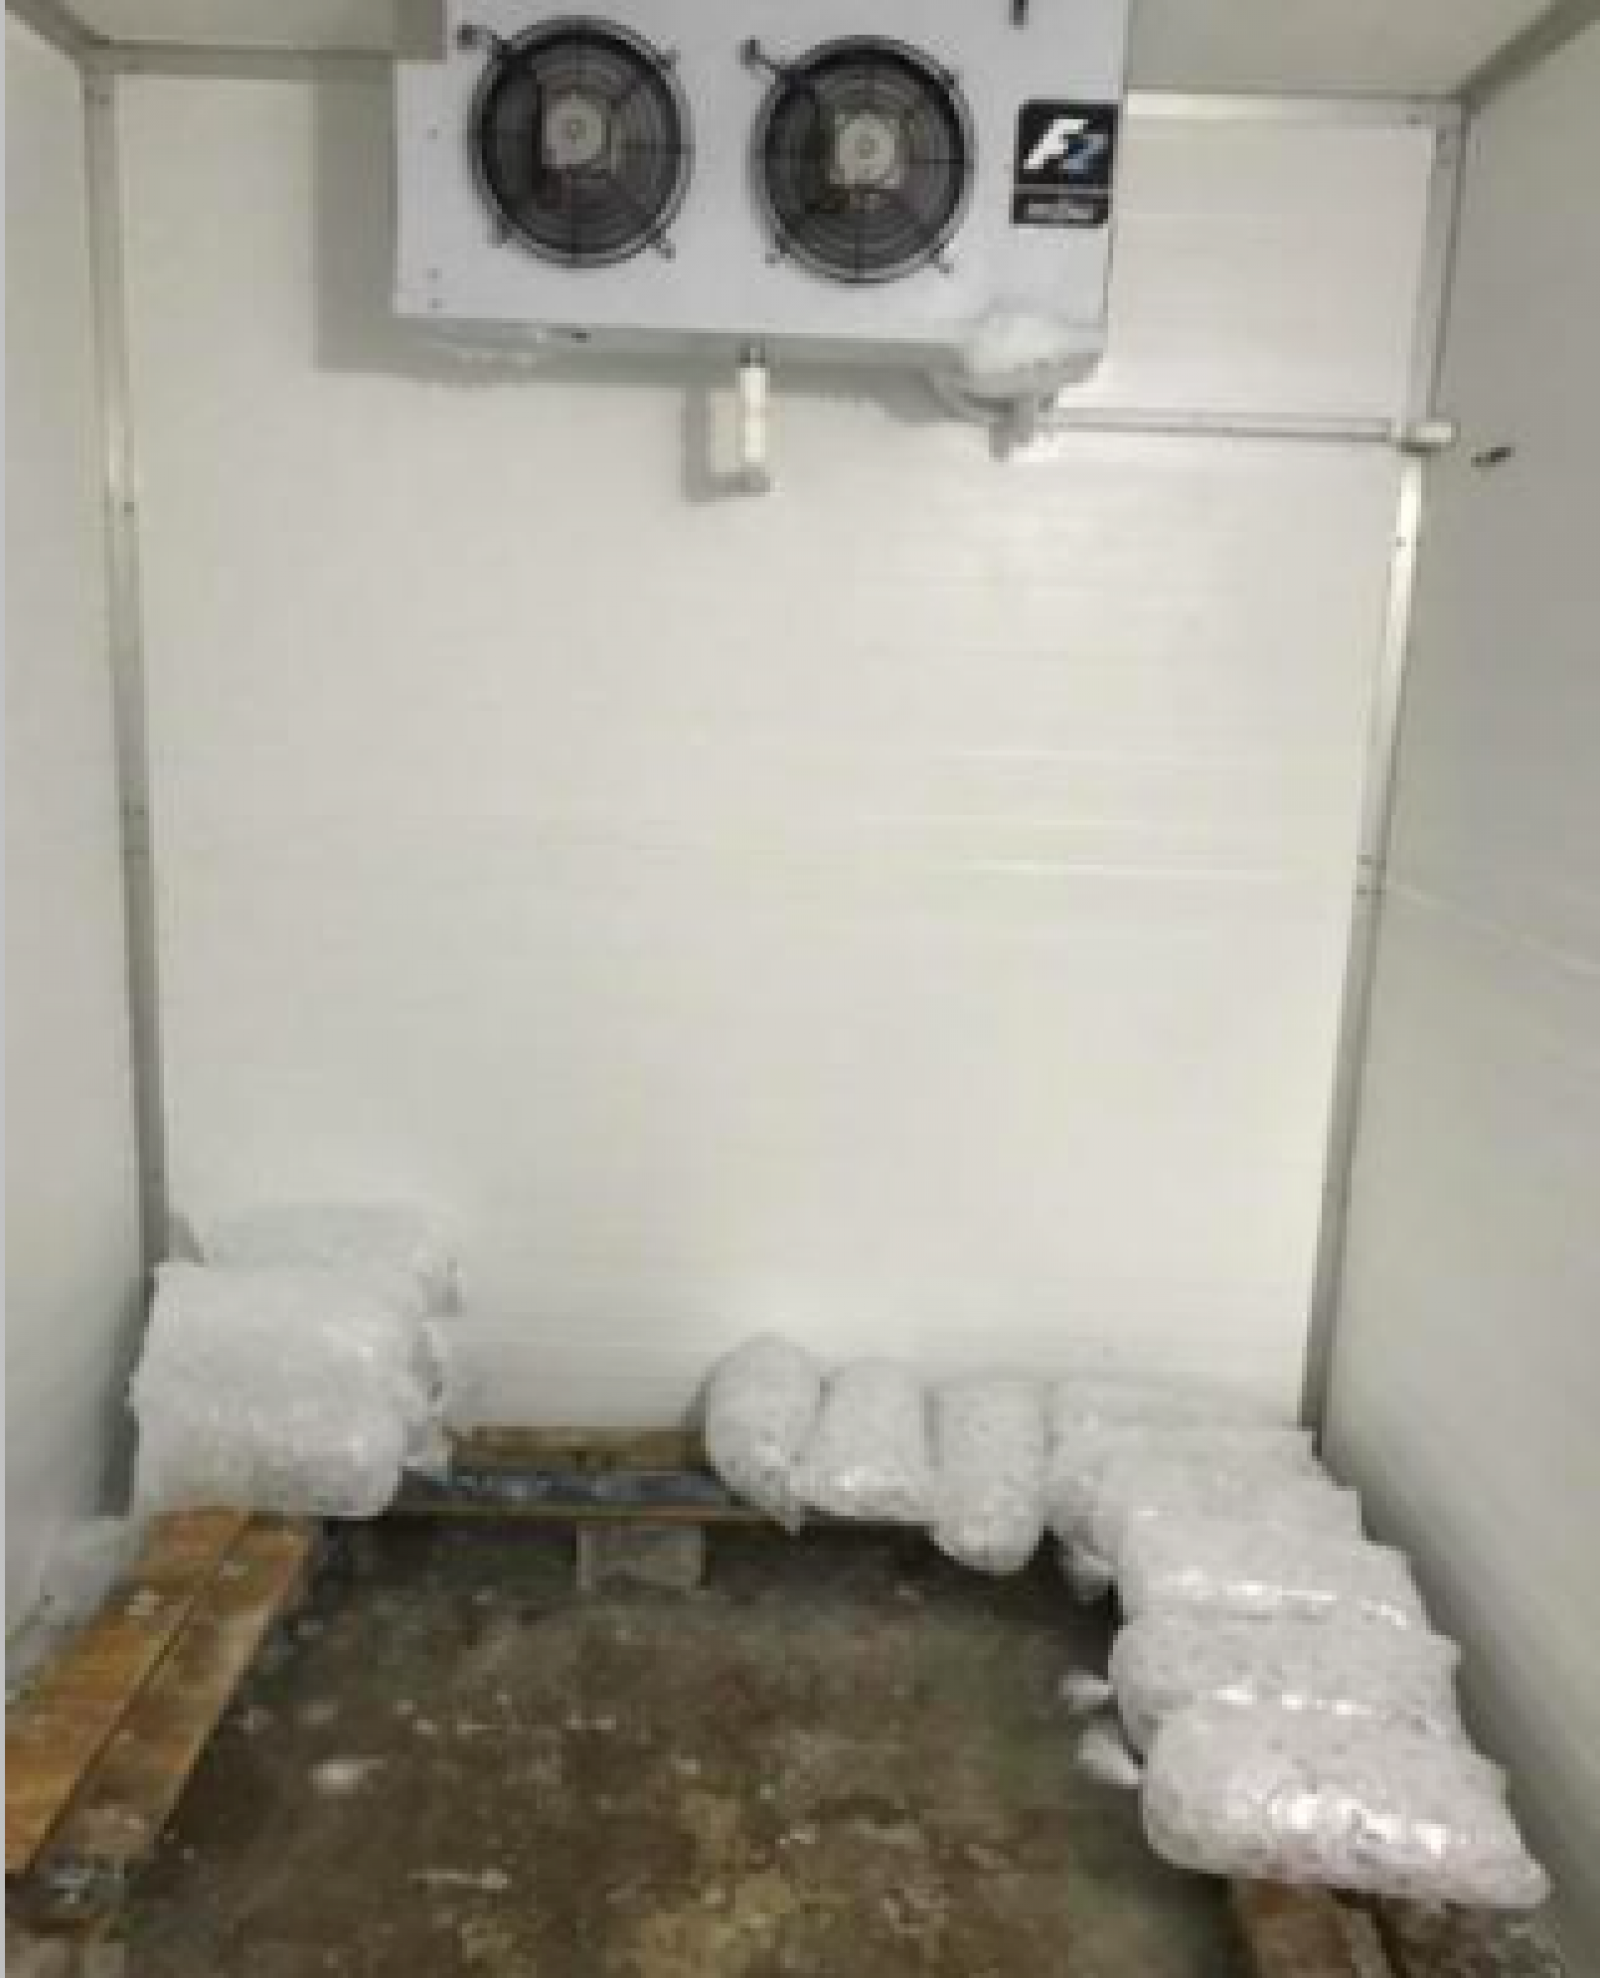 Ice made from purified water stored.